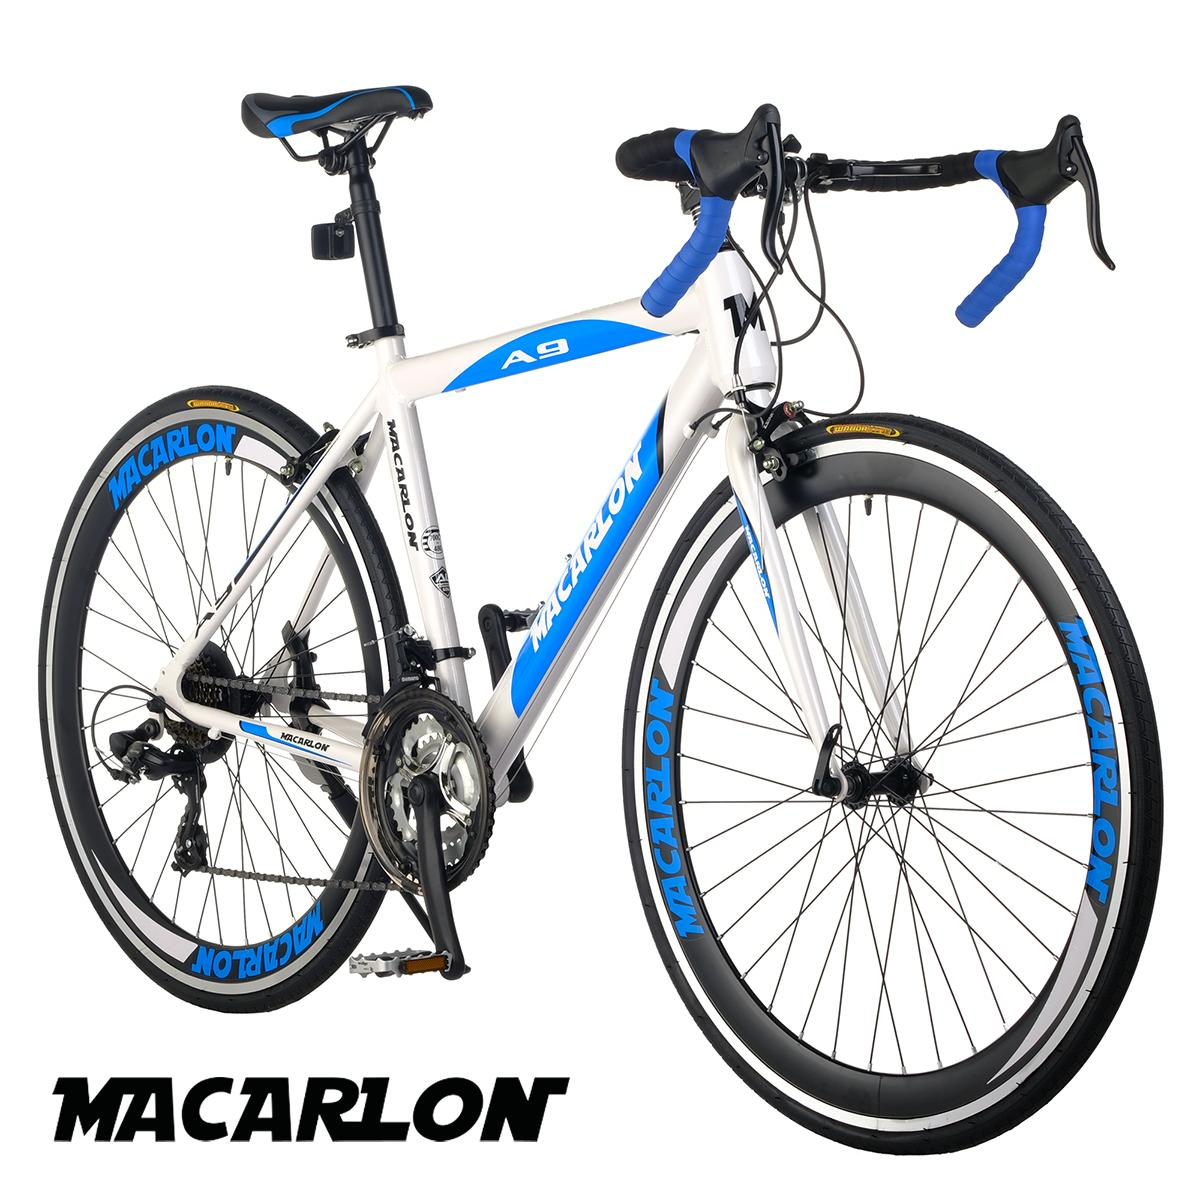 85e305c7c7a Macarlon A9 700C Shimano 21-Speed Alloy Road Bike (Gloss Pearlized  White/Blue